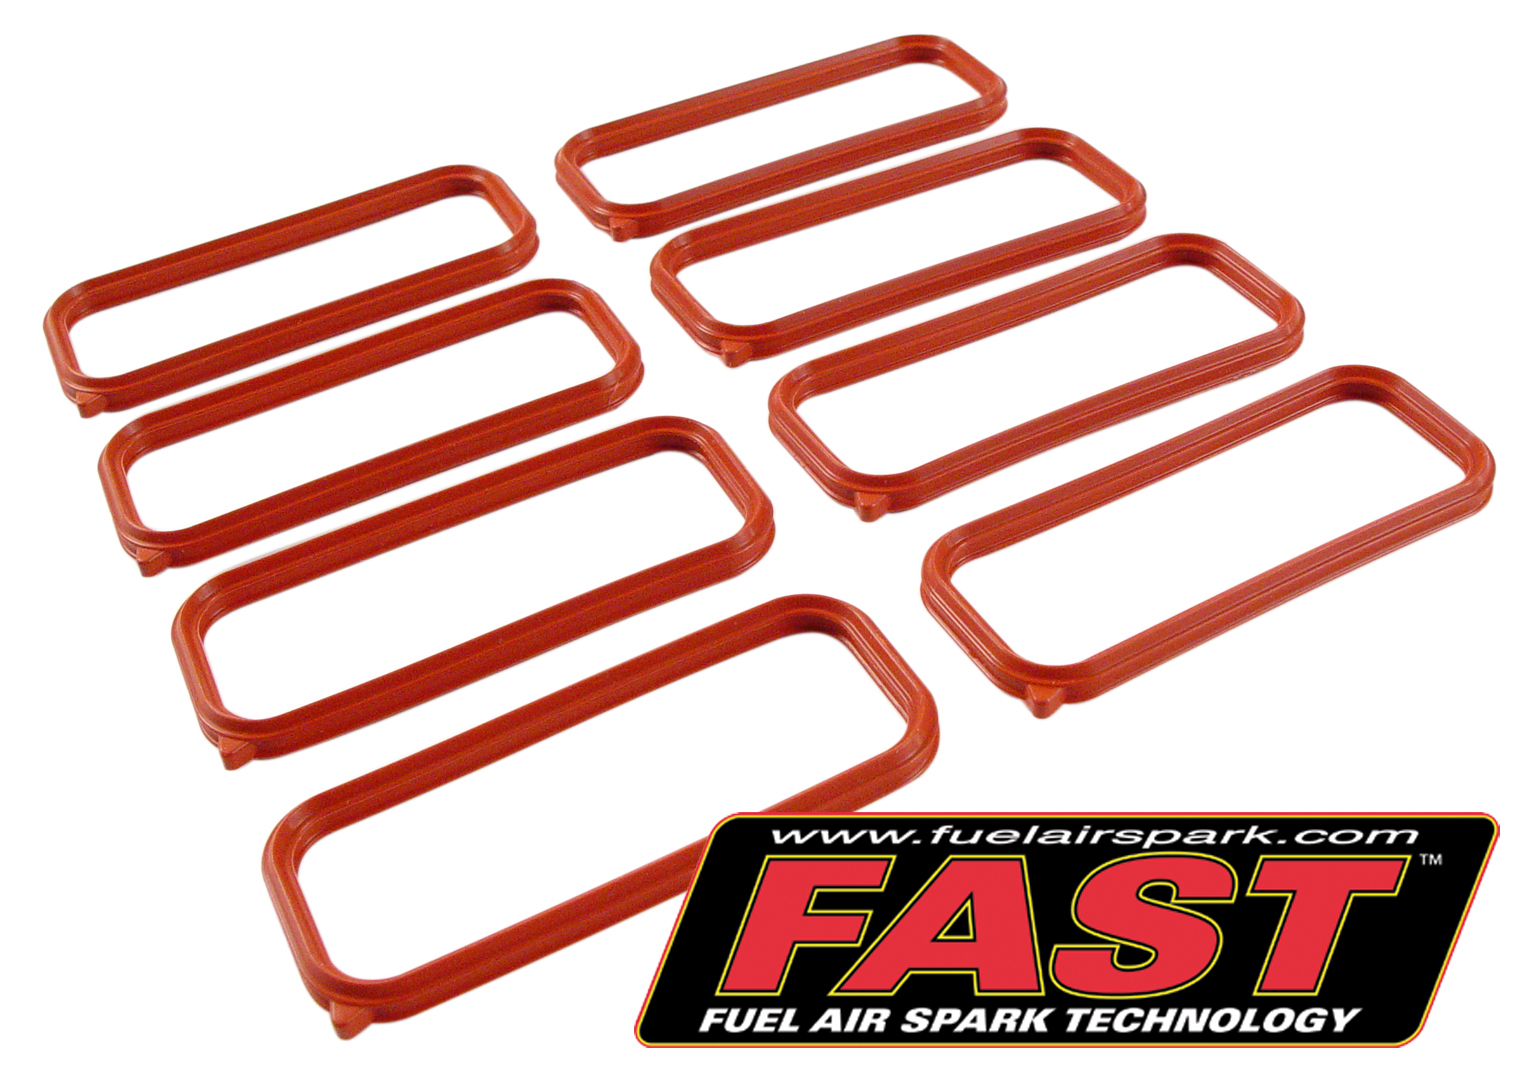 98-02 LS1 FAST LSX Intake Port Seal Kit (Set of 8)